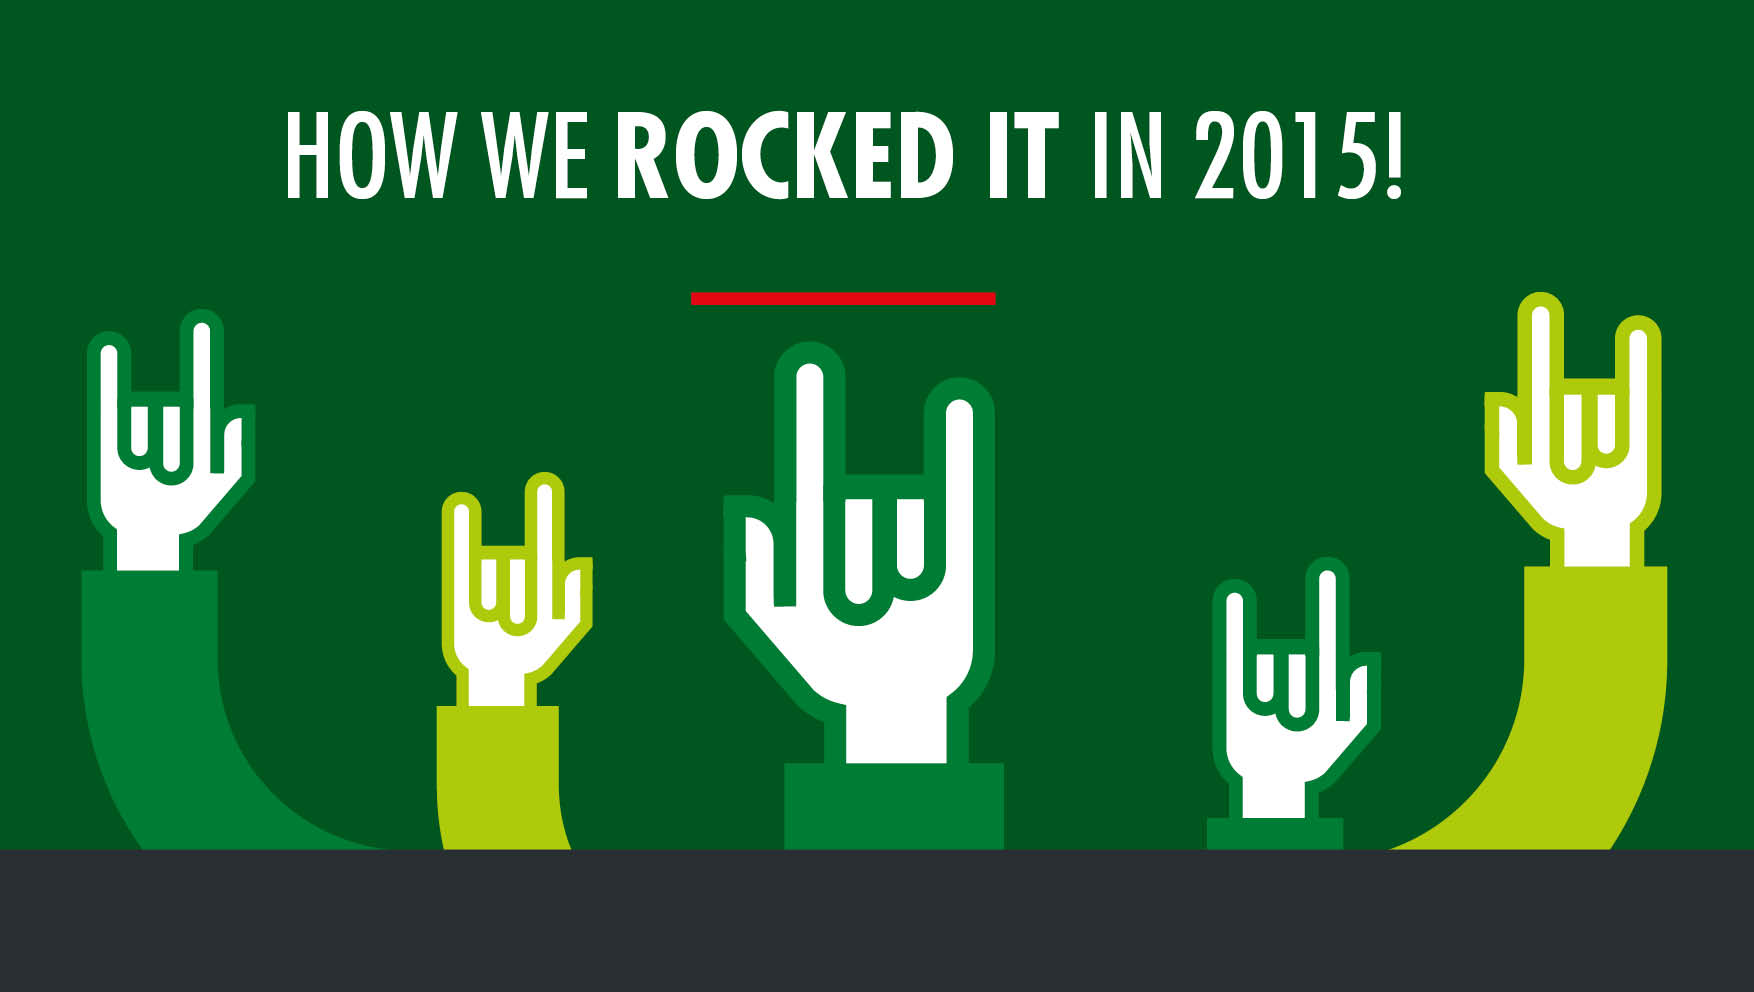 slides-heineken---team-digital-nl---year-20154.jpg